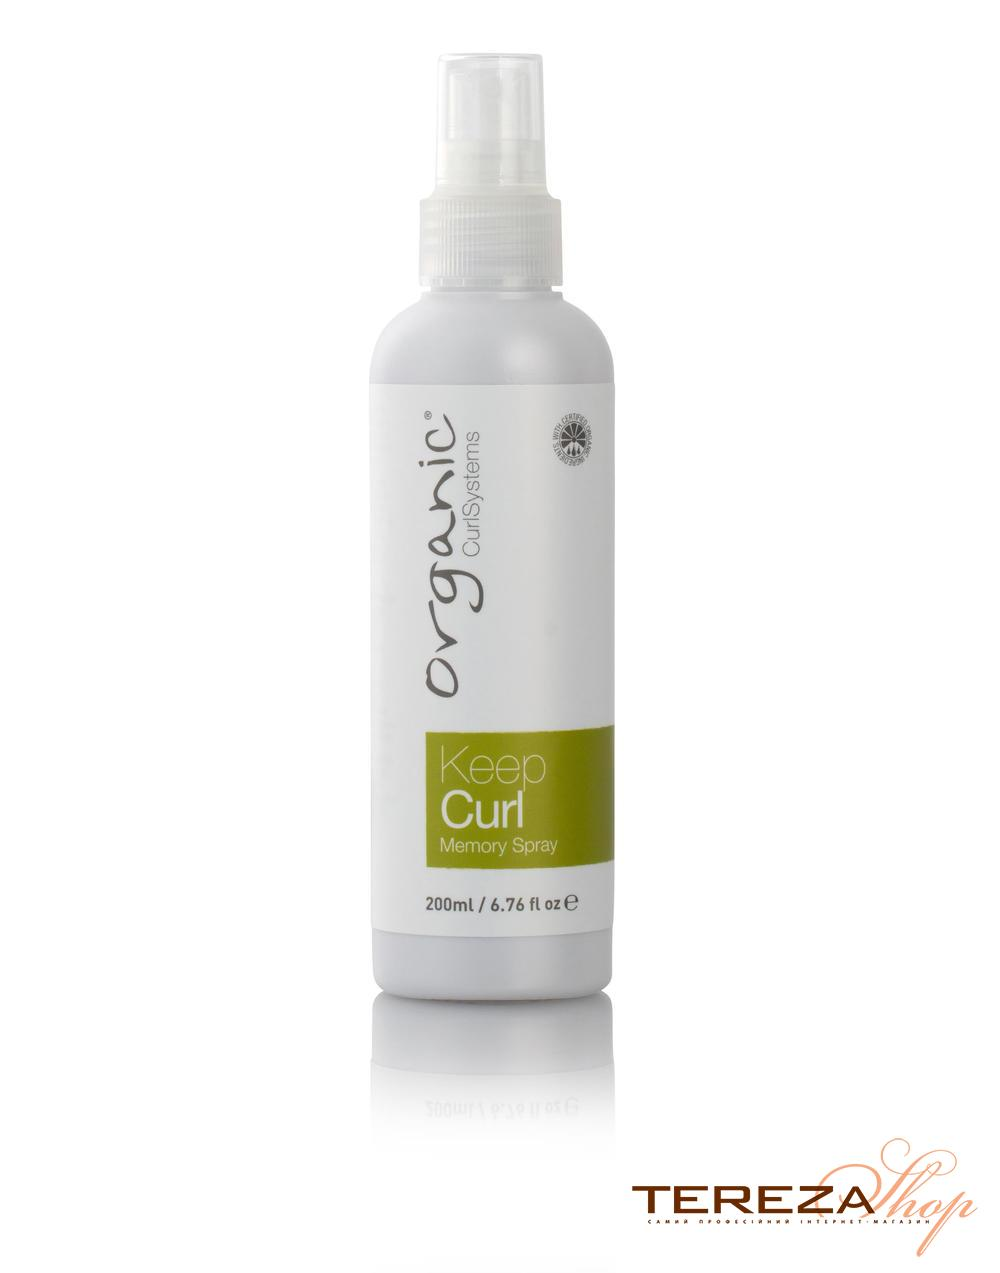 KEEP CURL MEMORY SPRAY ORGANIC | Tereza Shop